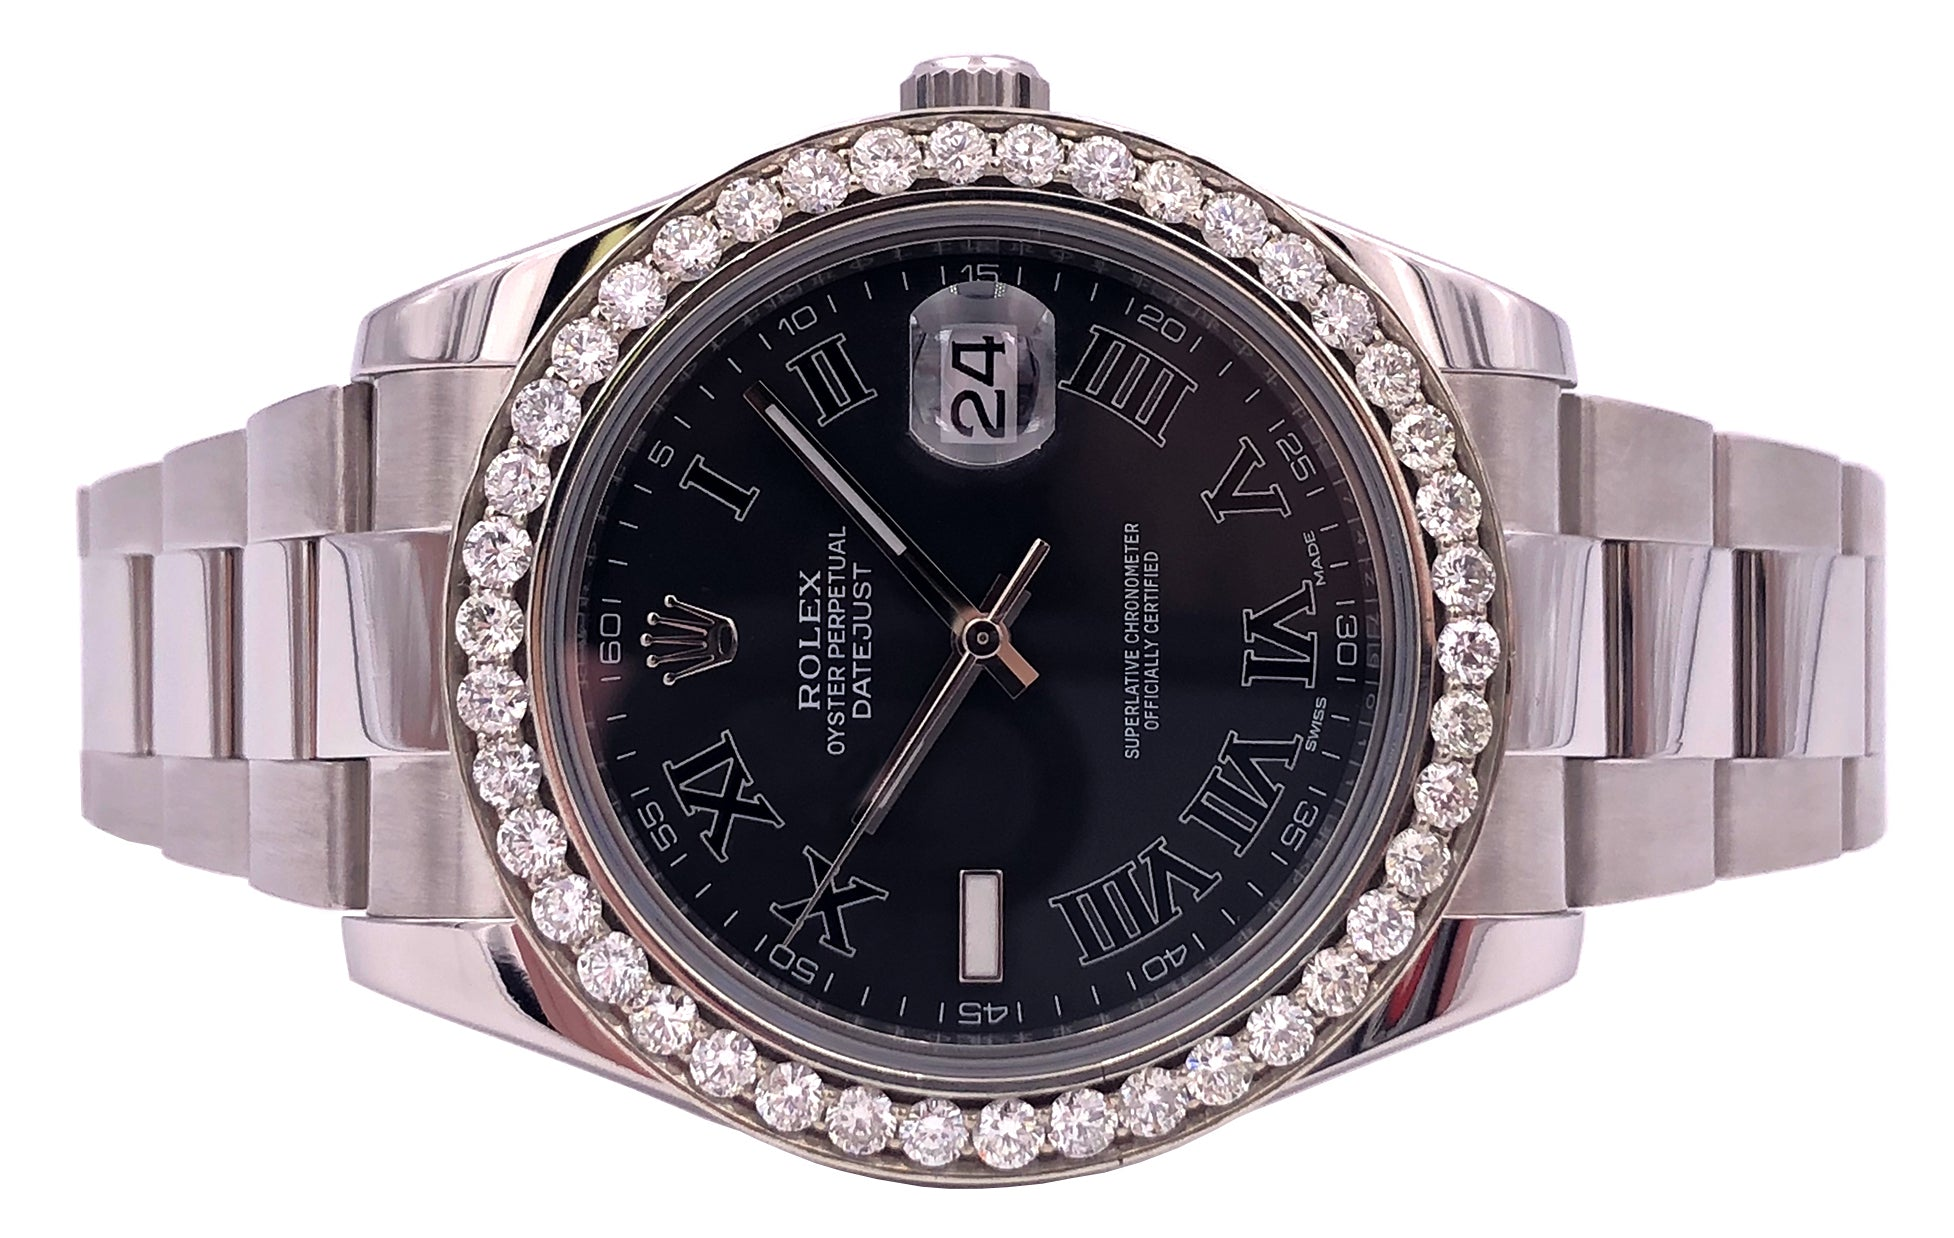 Rolex Datejust II with 4 CT Diamond Bezel Complete Black Dial - 116300